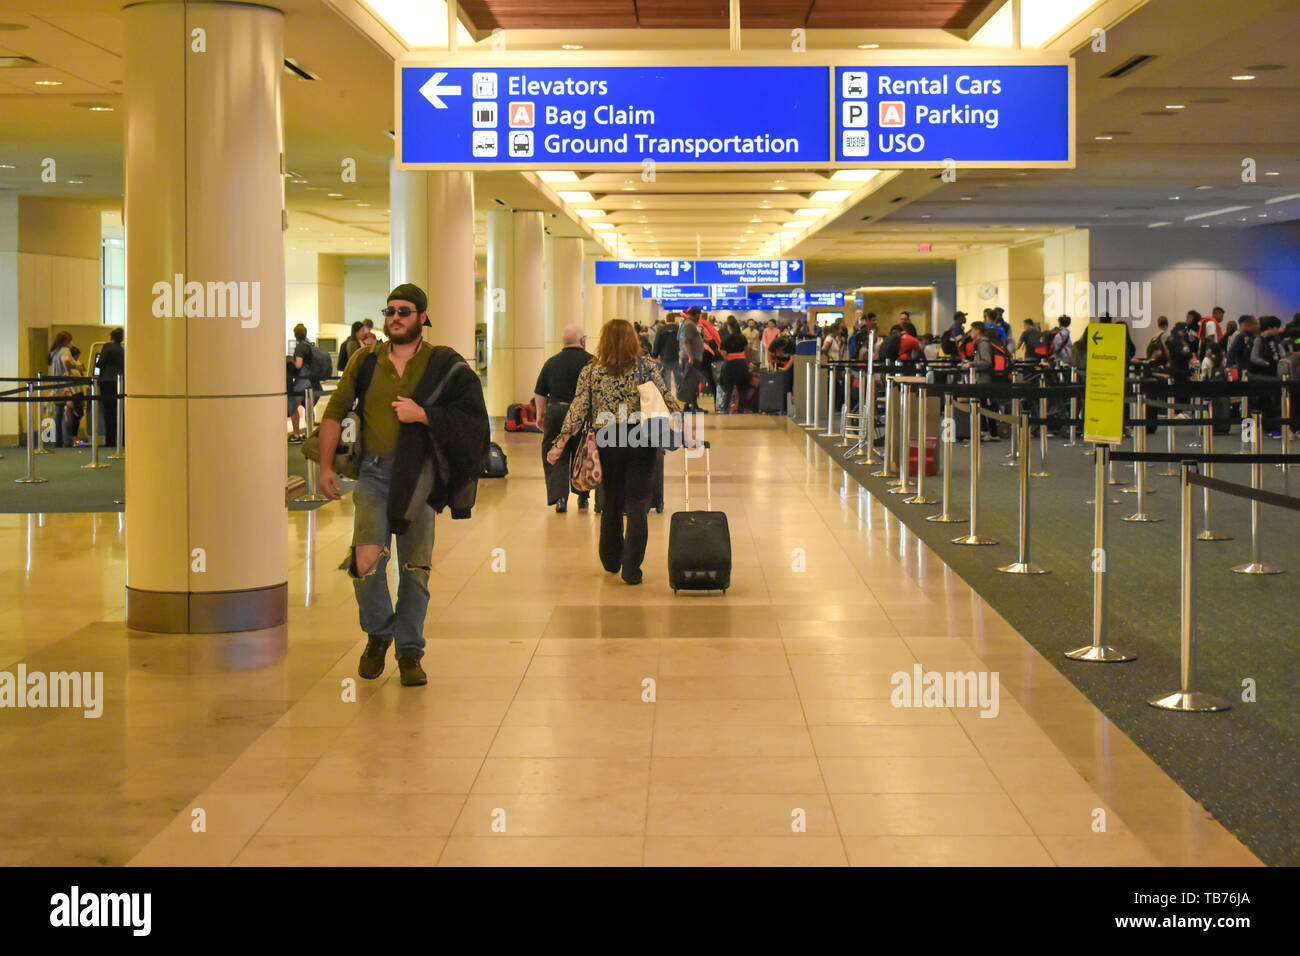 Orlando, Florida.  March 01, 2019. People walking in Check-in and Ticketing area at Orlando International Airport  (1) - Stock Image